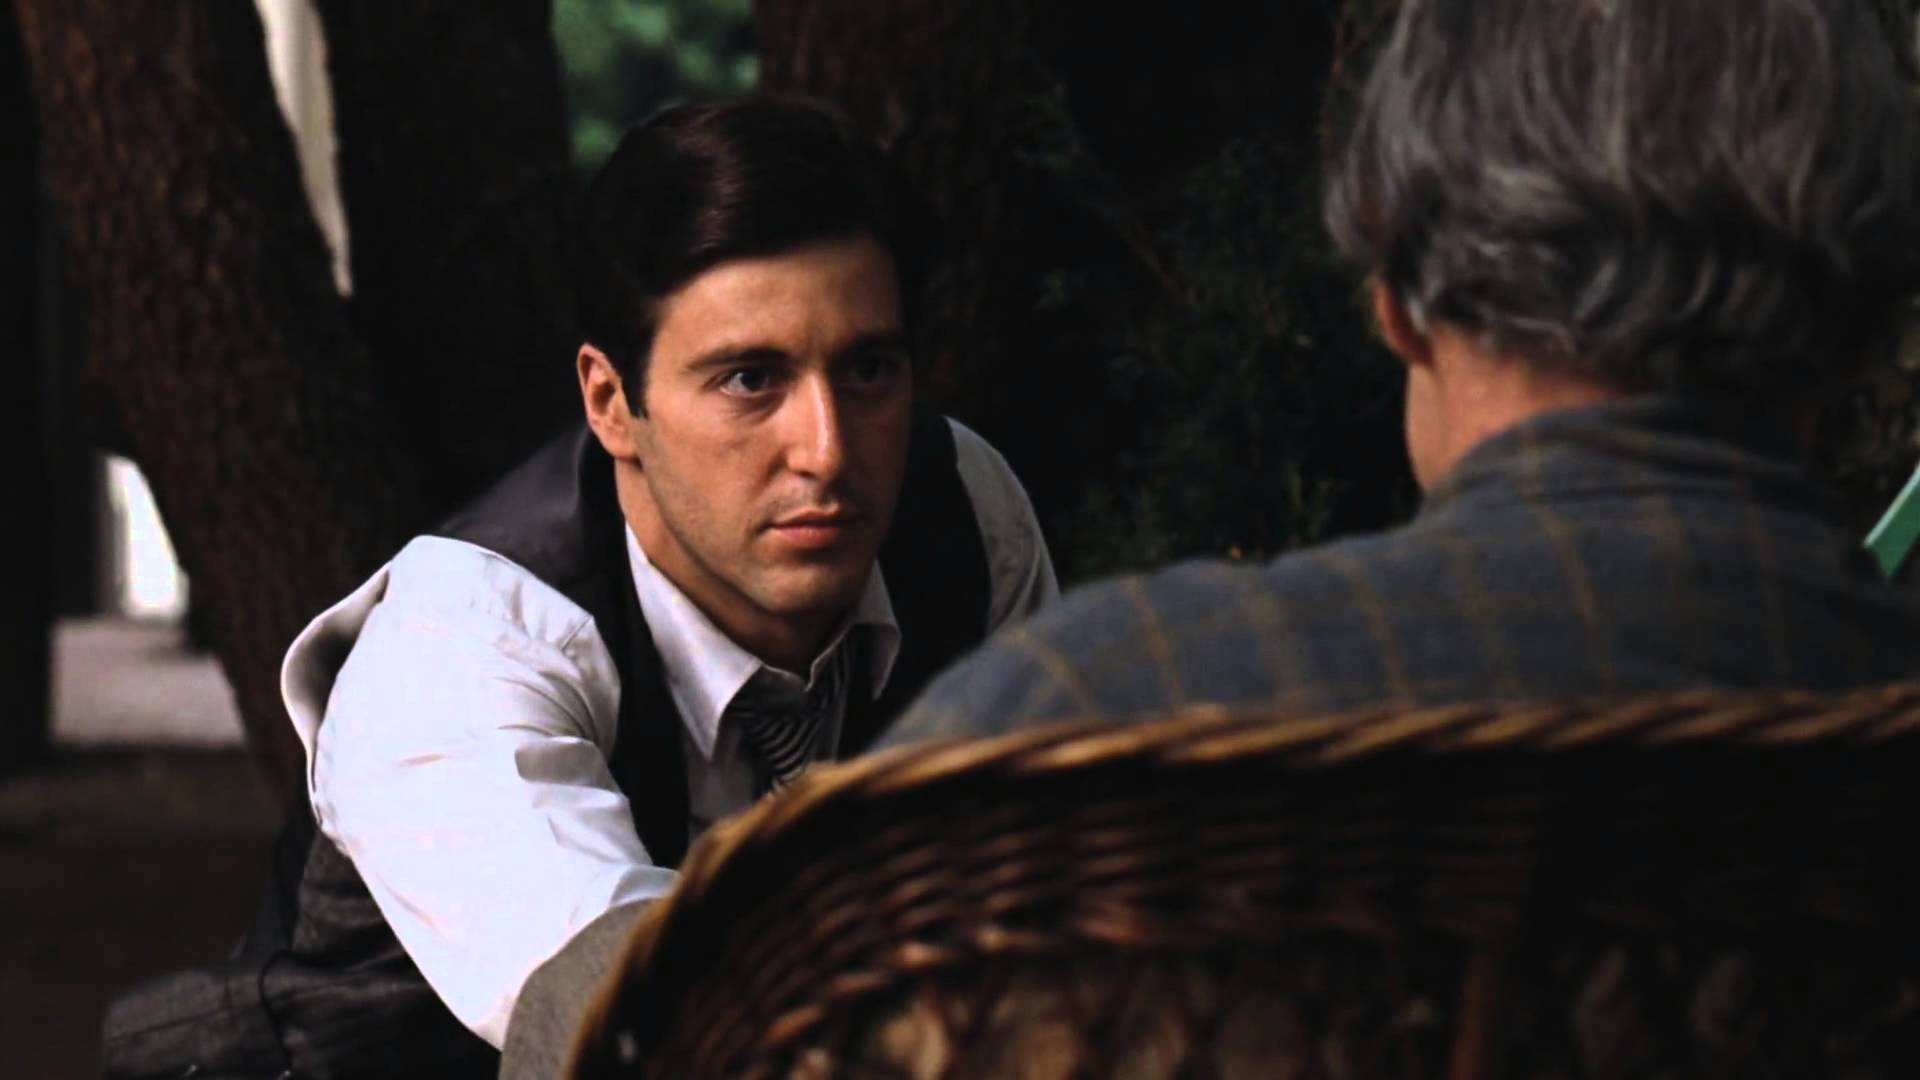 Al Pacino Pensaba Que The Godfather Iba A Ser Un Fracaso